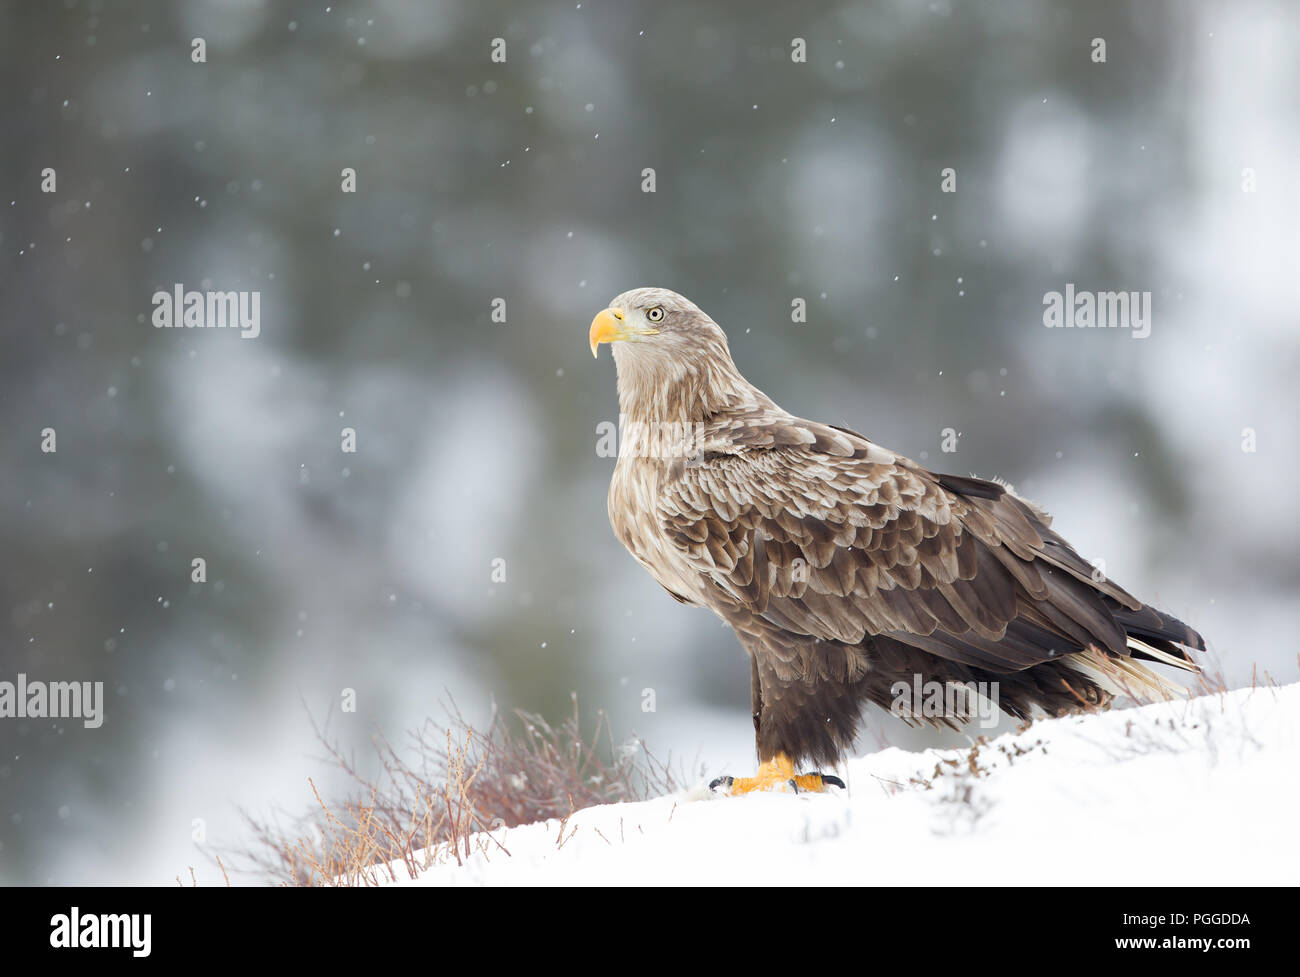 Close-up of a white-tailed eagle (Haliaeetus albicilla) standing on snow in winter while snowing, Norway. - Stock Image